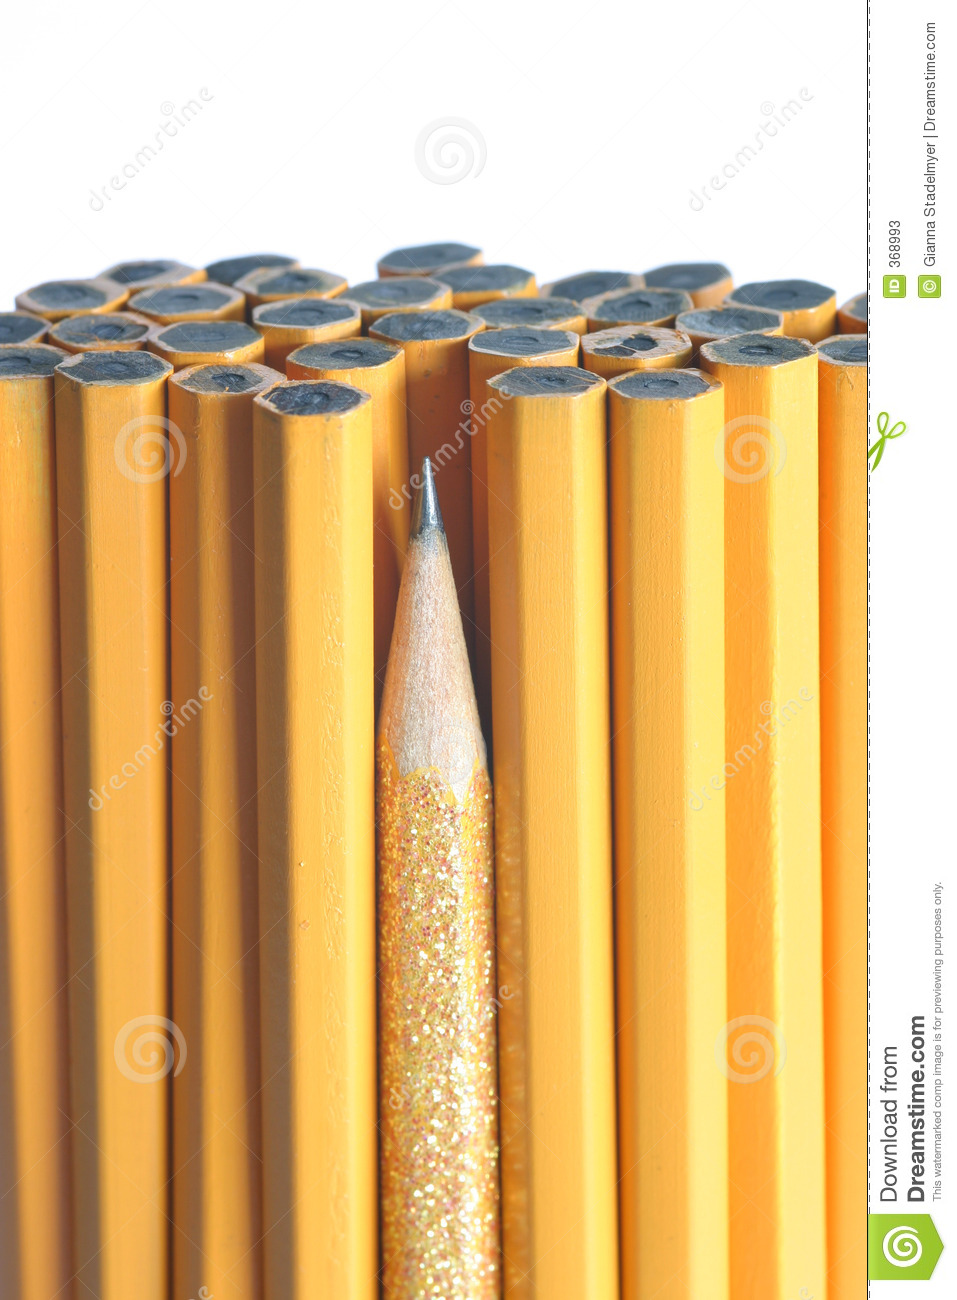 Sharpest Pencil in the Bunch